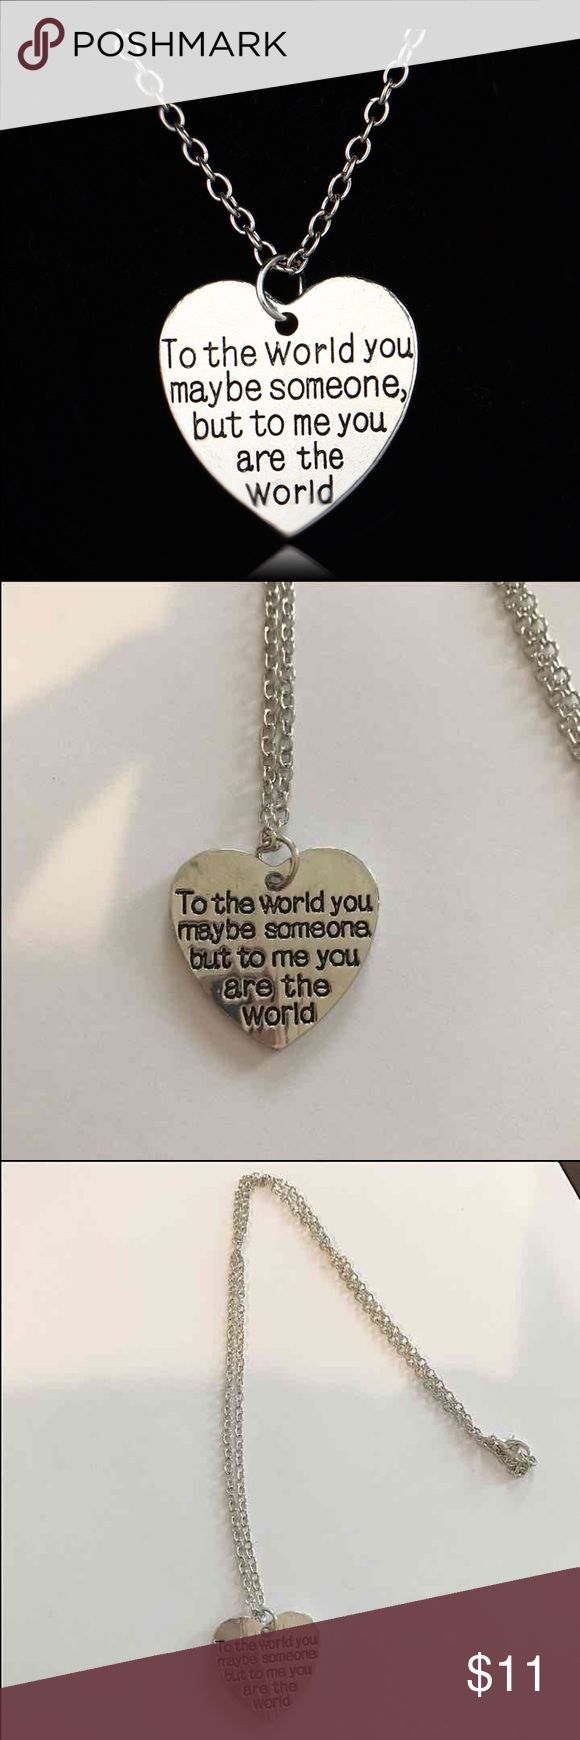 Heart ❤️ engraved necklace Super cute engraved hand stamped heart silver tone alloy necklace chain is about 20 inches long ,,,,New.   2 available Jewelry Necklaces